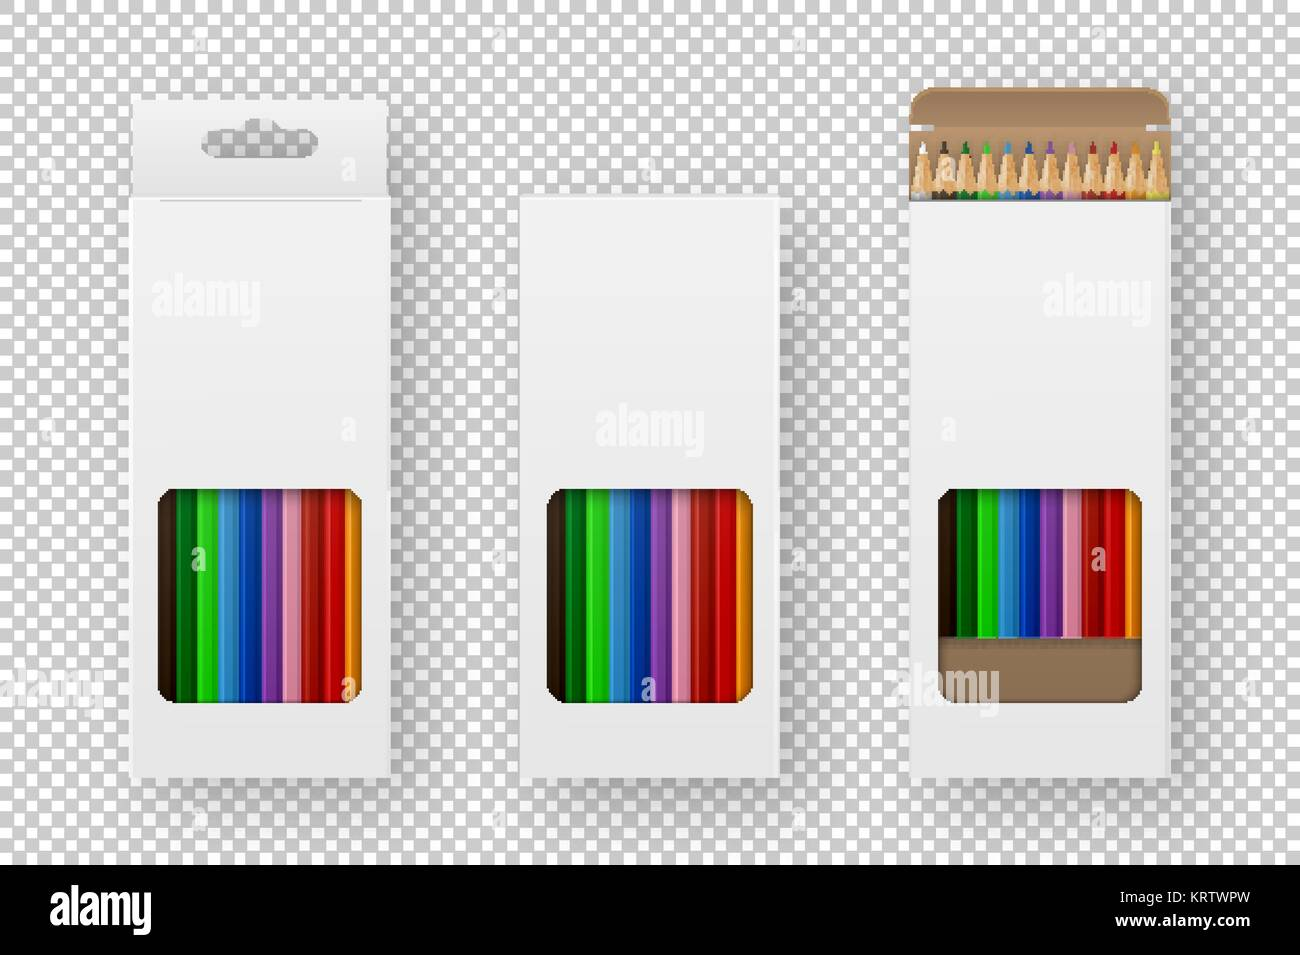 vector realistic box of colored pencils icon set closeup isolated on